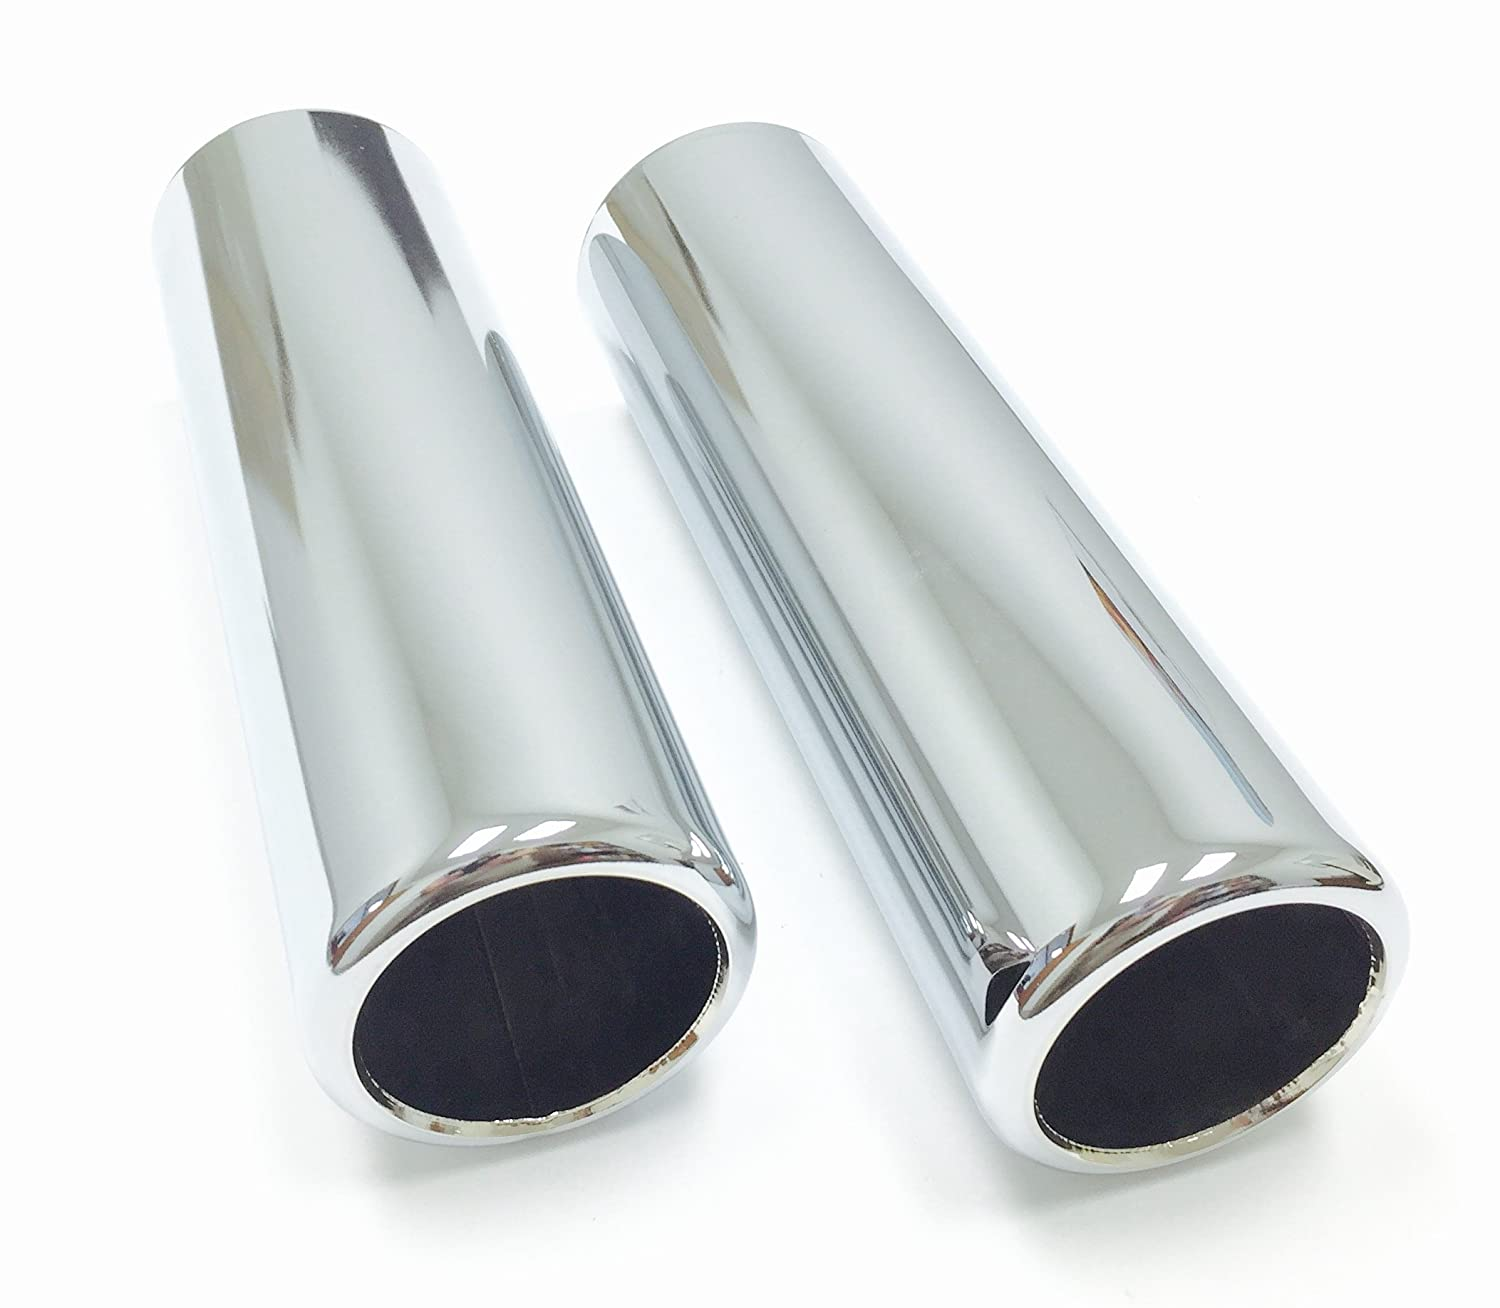 2 Piece Set of Pencil Cut Chrome Exhaust Tips 2' Inlet, 2.25' Outlet, 9' Length 2.25 Outlet 9 Length After Market Auto & More